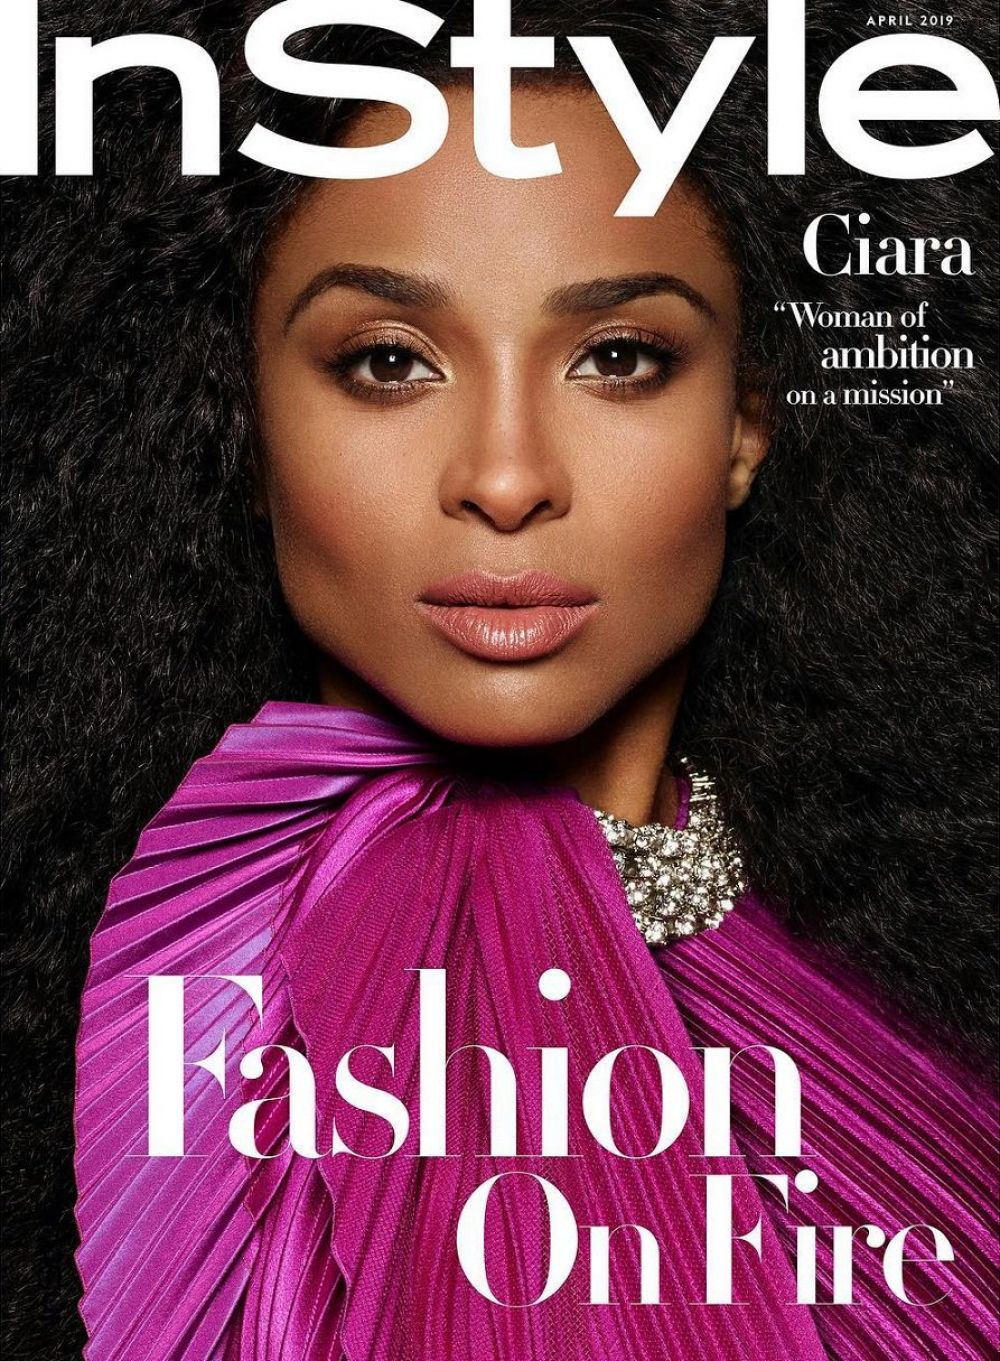 Instyle Magazine Us: CIARA In Instyle Magazine, April 2019 Issue